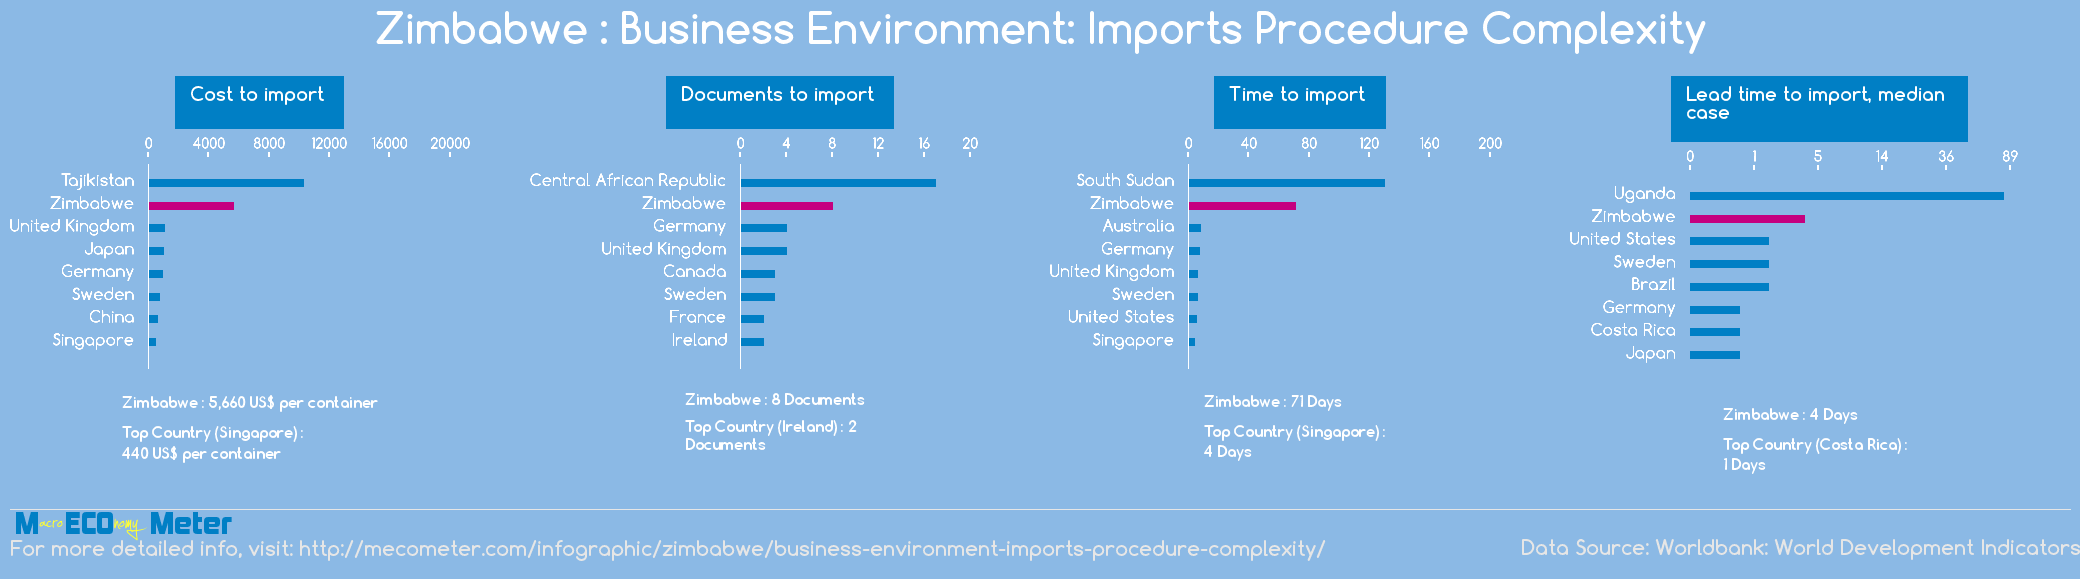 Zimbabwe : Business Environment: Imports Procedure Complexity